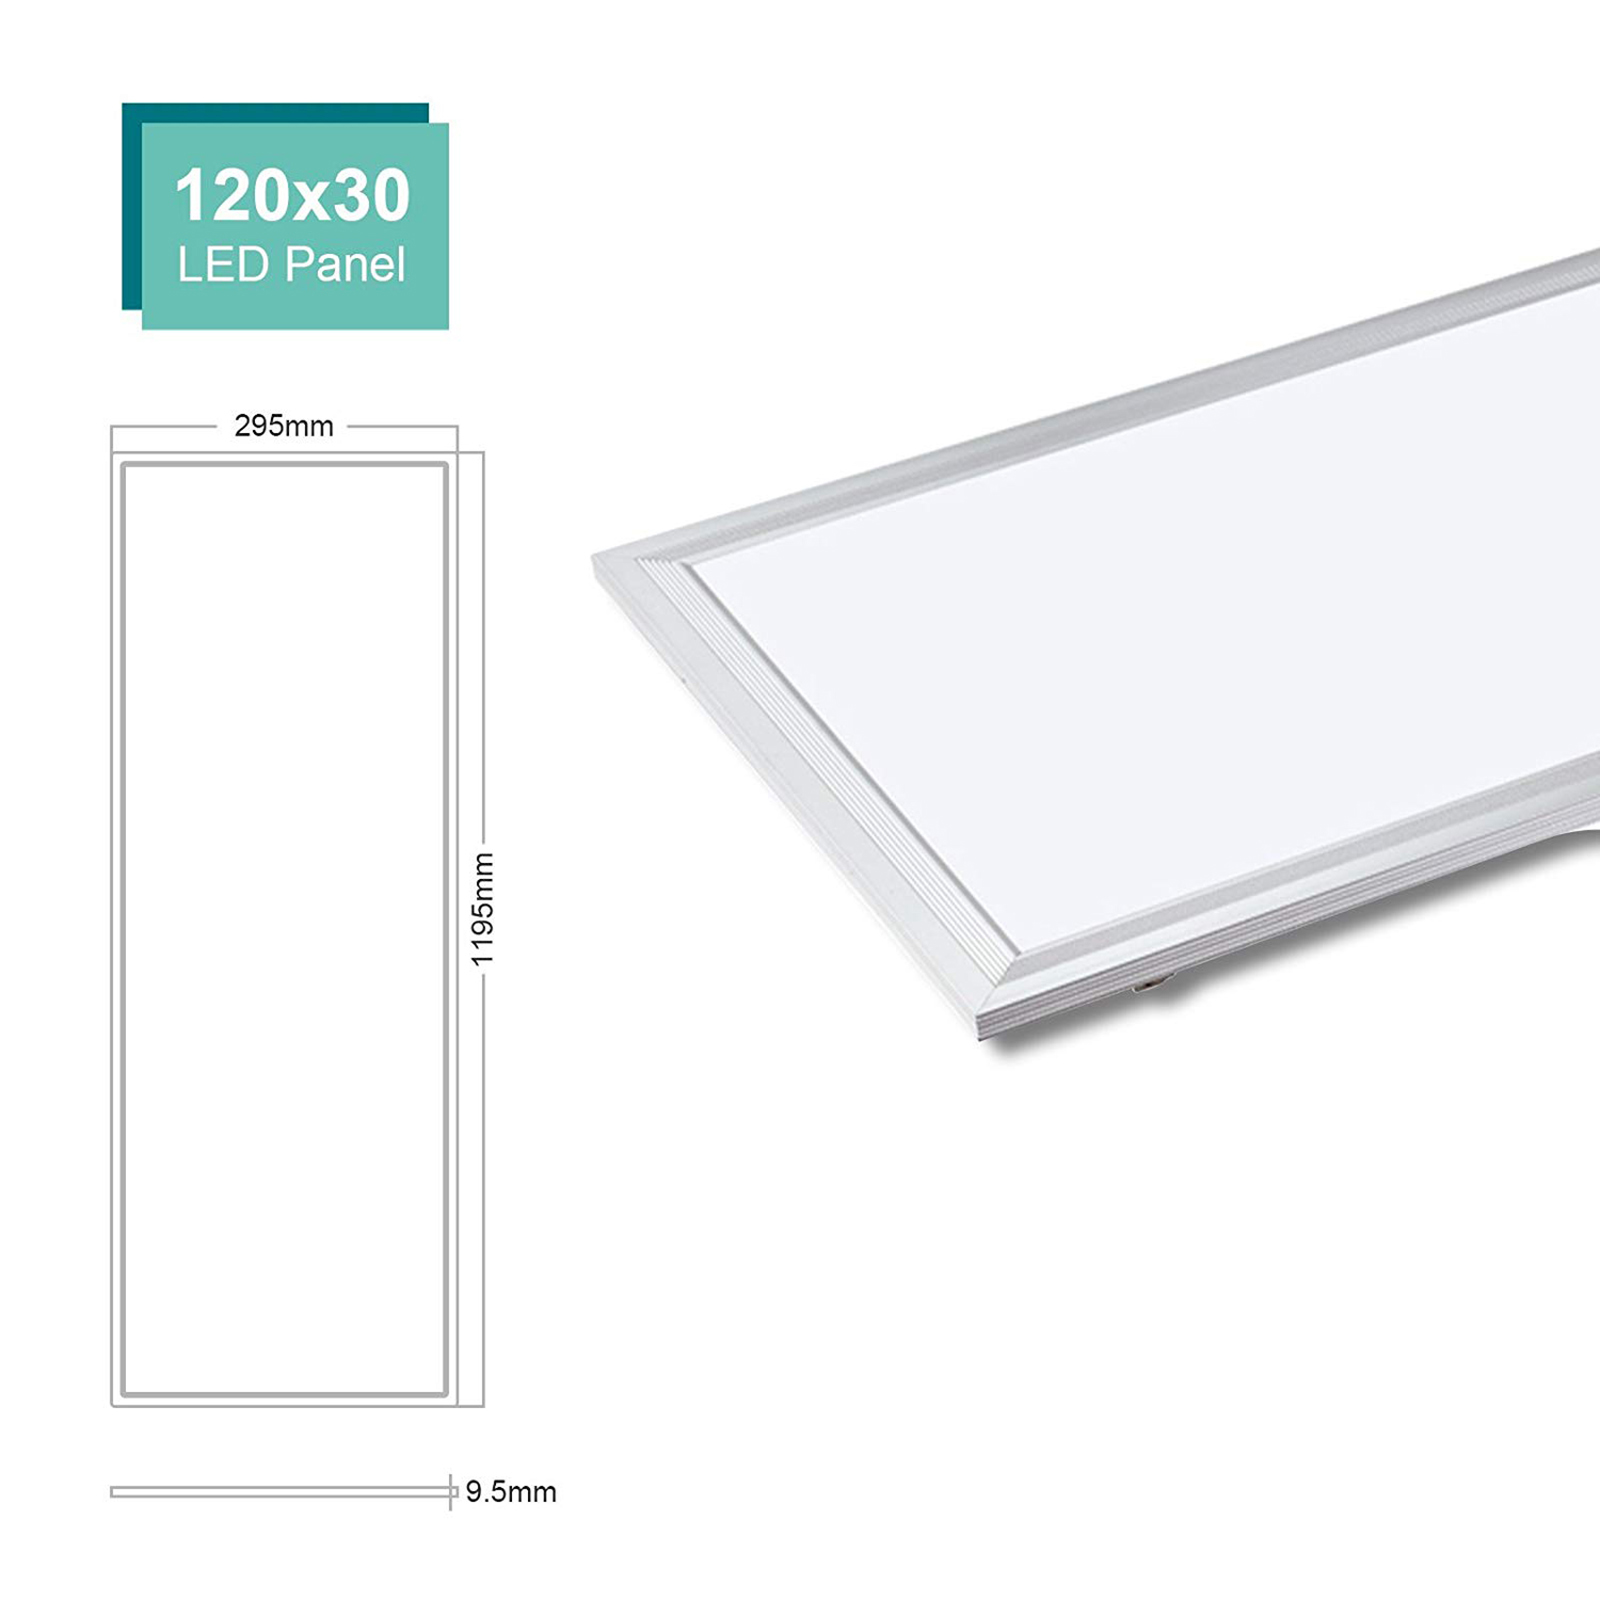 Led panel recessed 120x30 48W lamp rectangular light 4800lm driver 220V